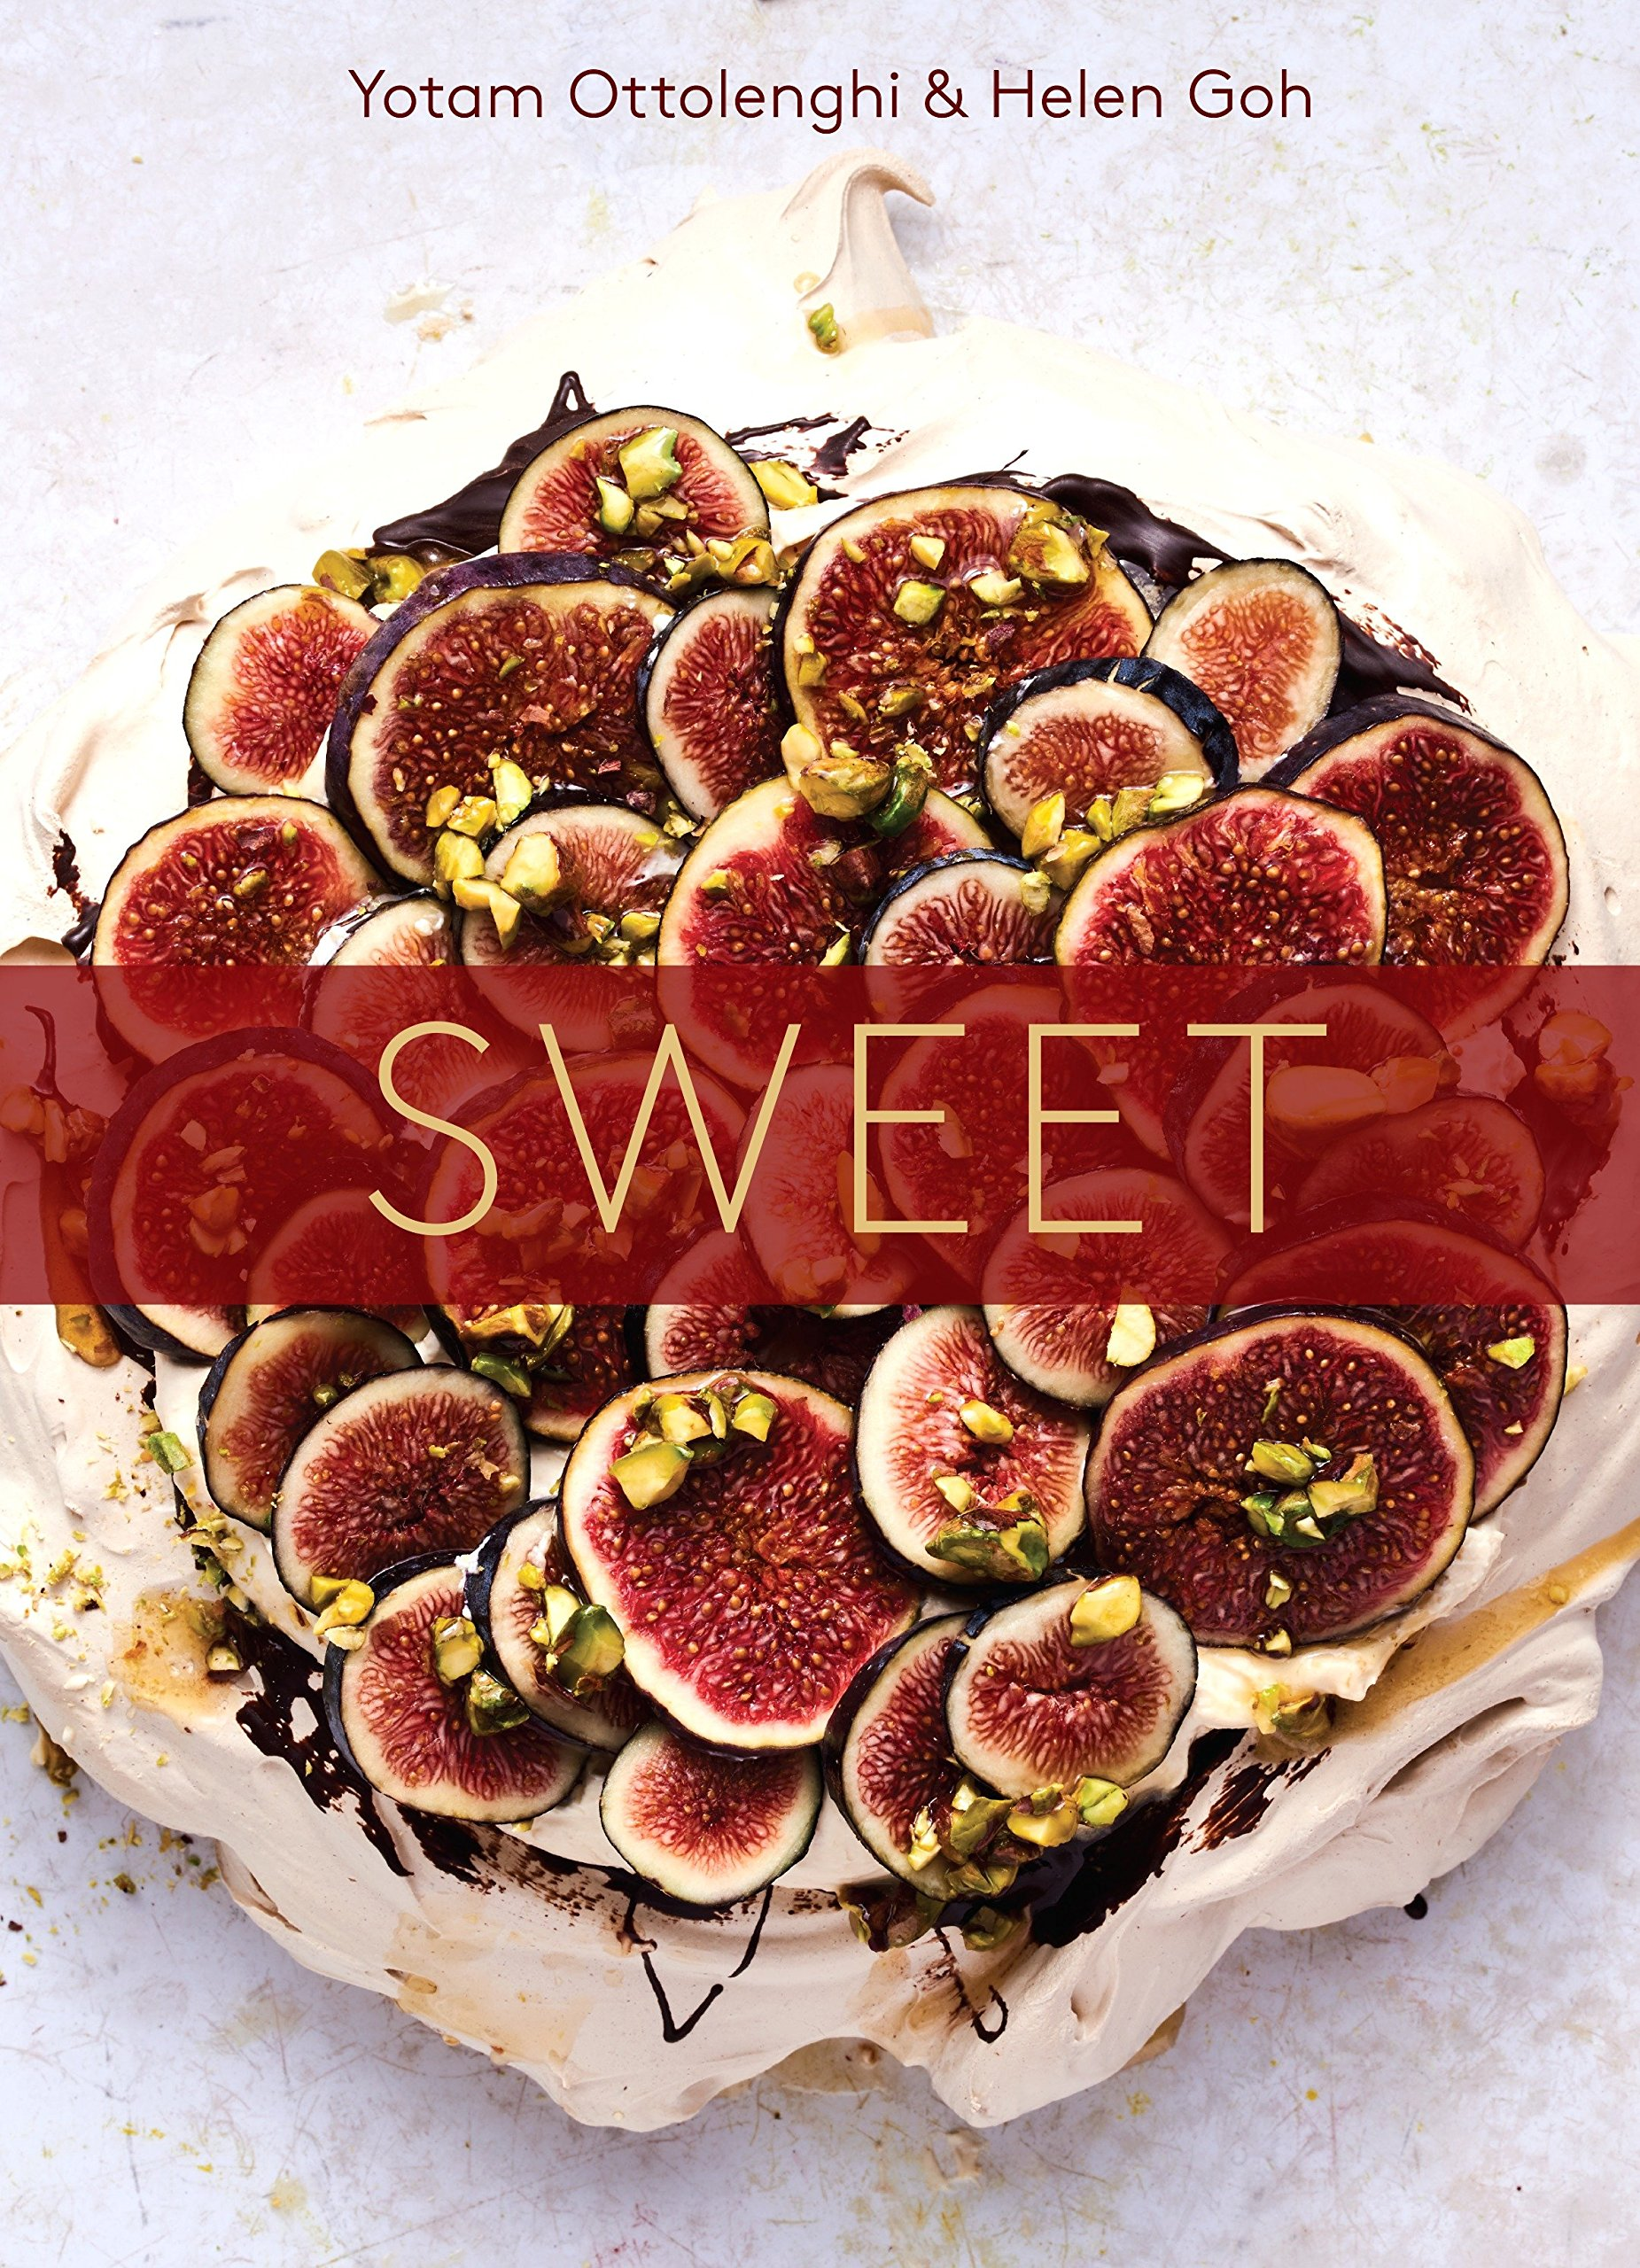 Sweet: Desserts from London's Ottolenghi [A Baking Book] by Ten Speed Press